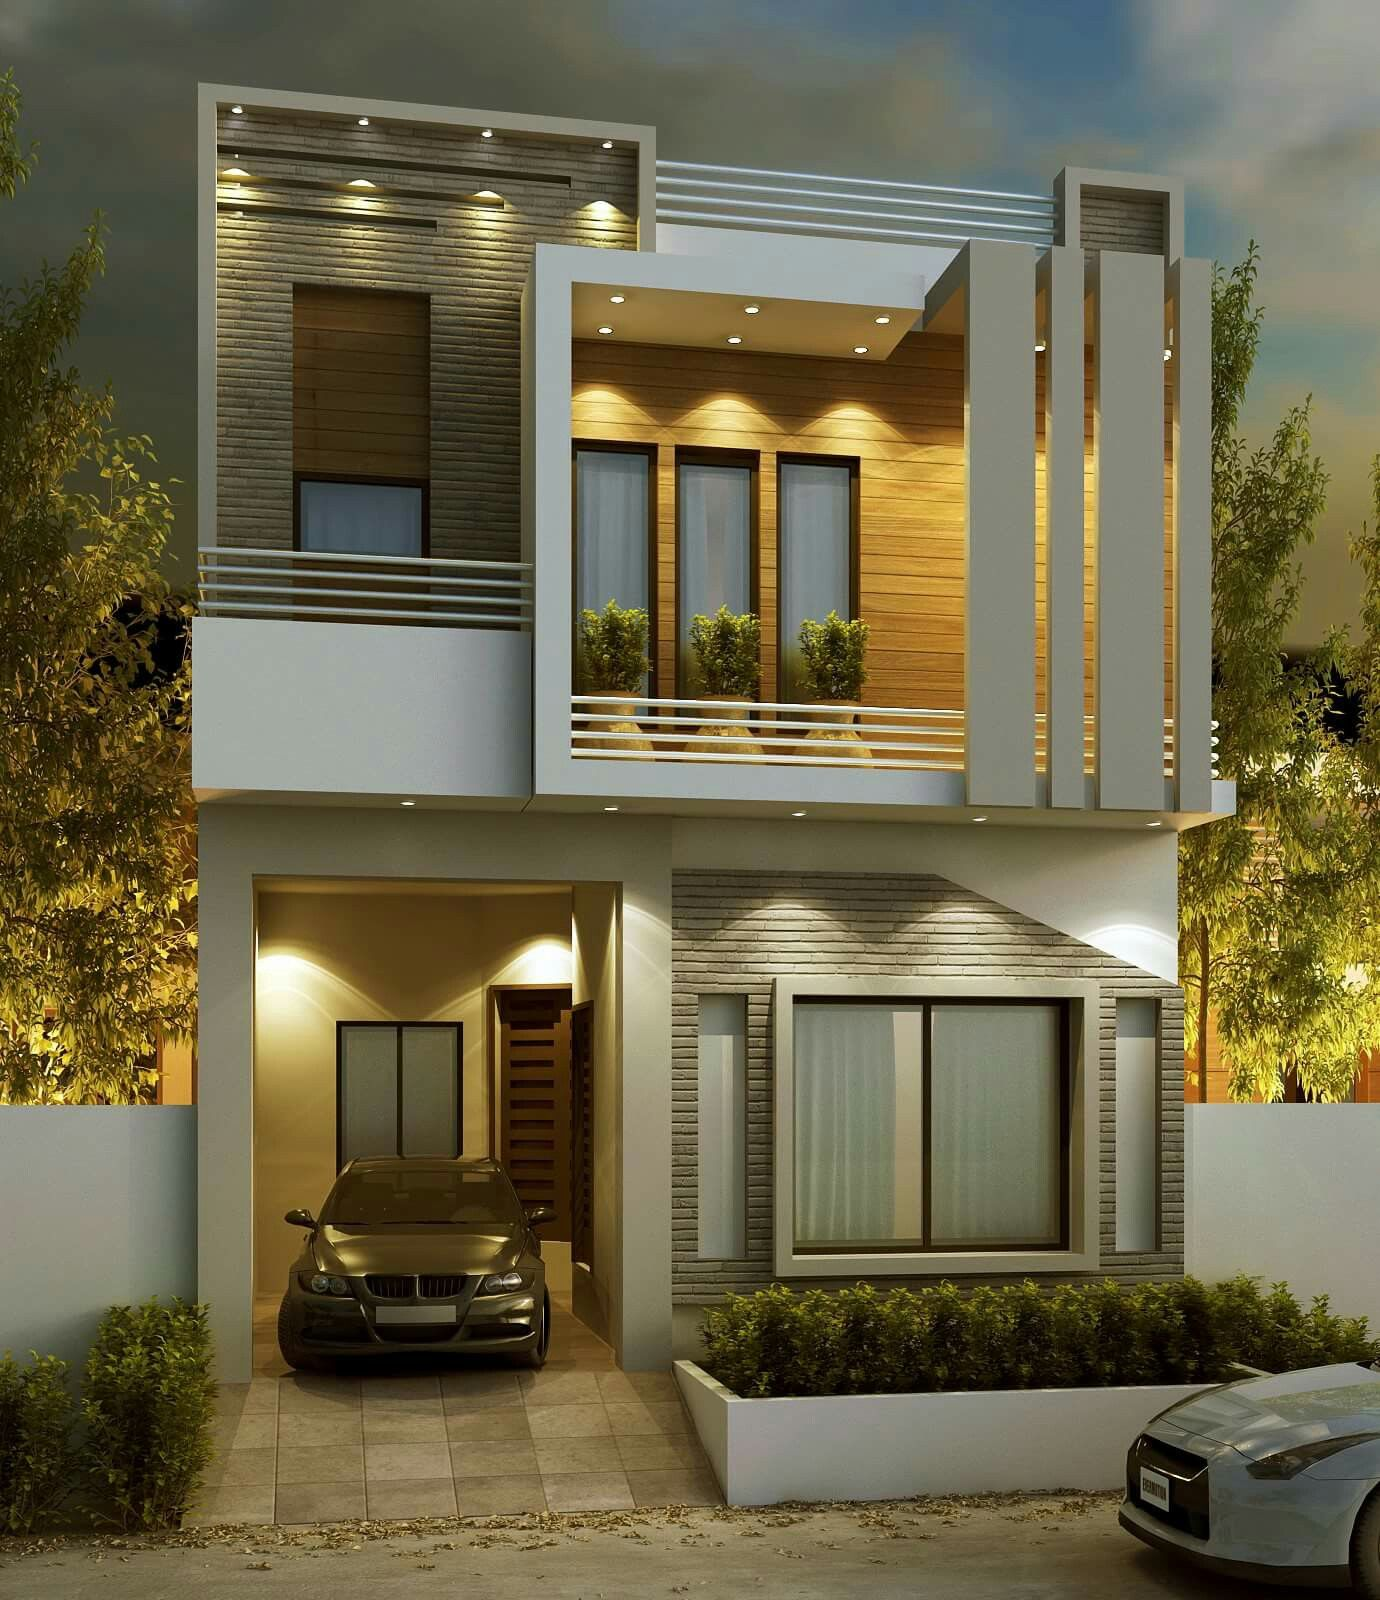 marla house plan elevation architecture design sustainable art join youtube community for also etude face designing contouring palette hiqra di rh pinterest